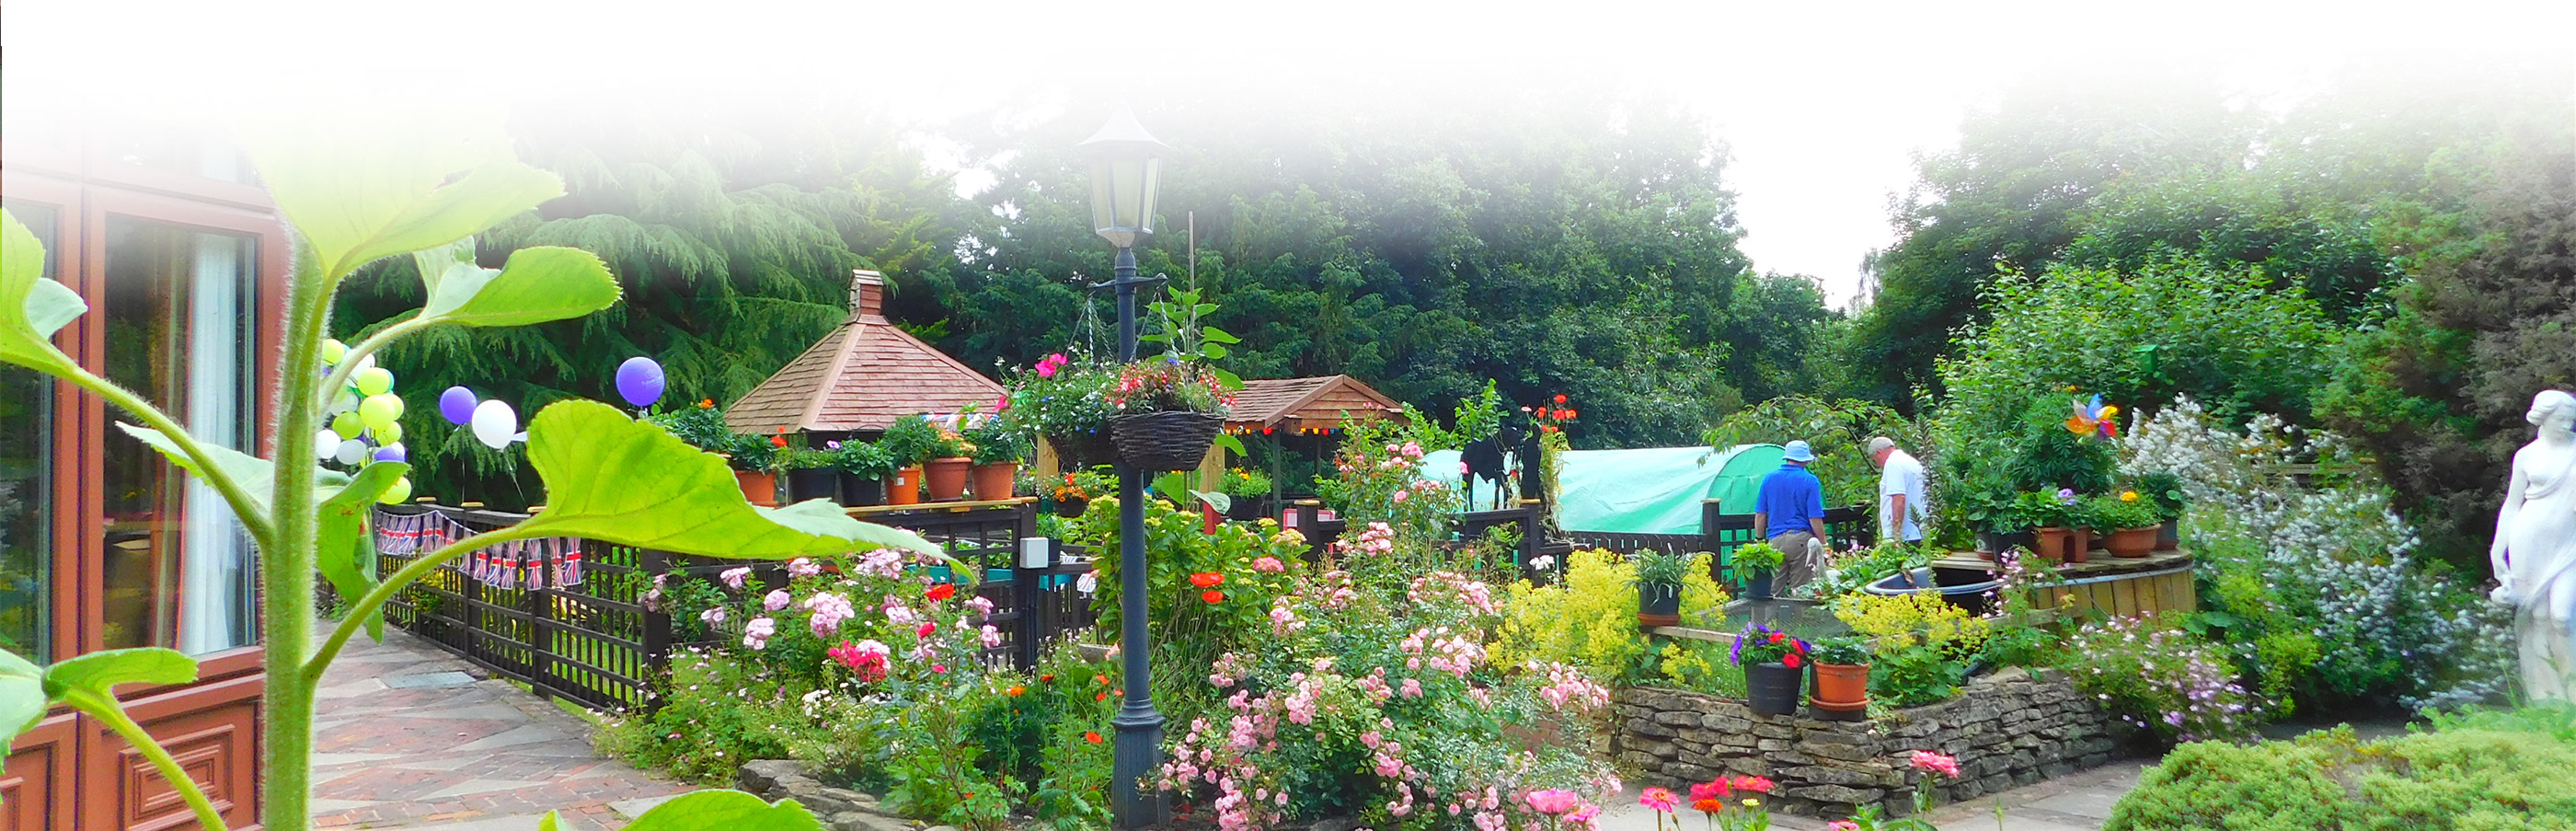 Pink and Red flowers in garden at Steep house Nursing Home Petersfield